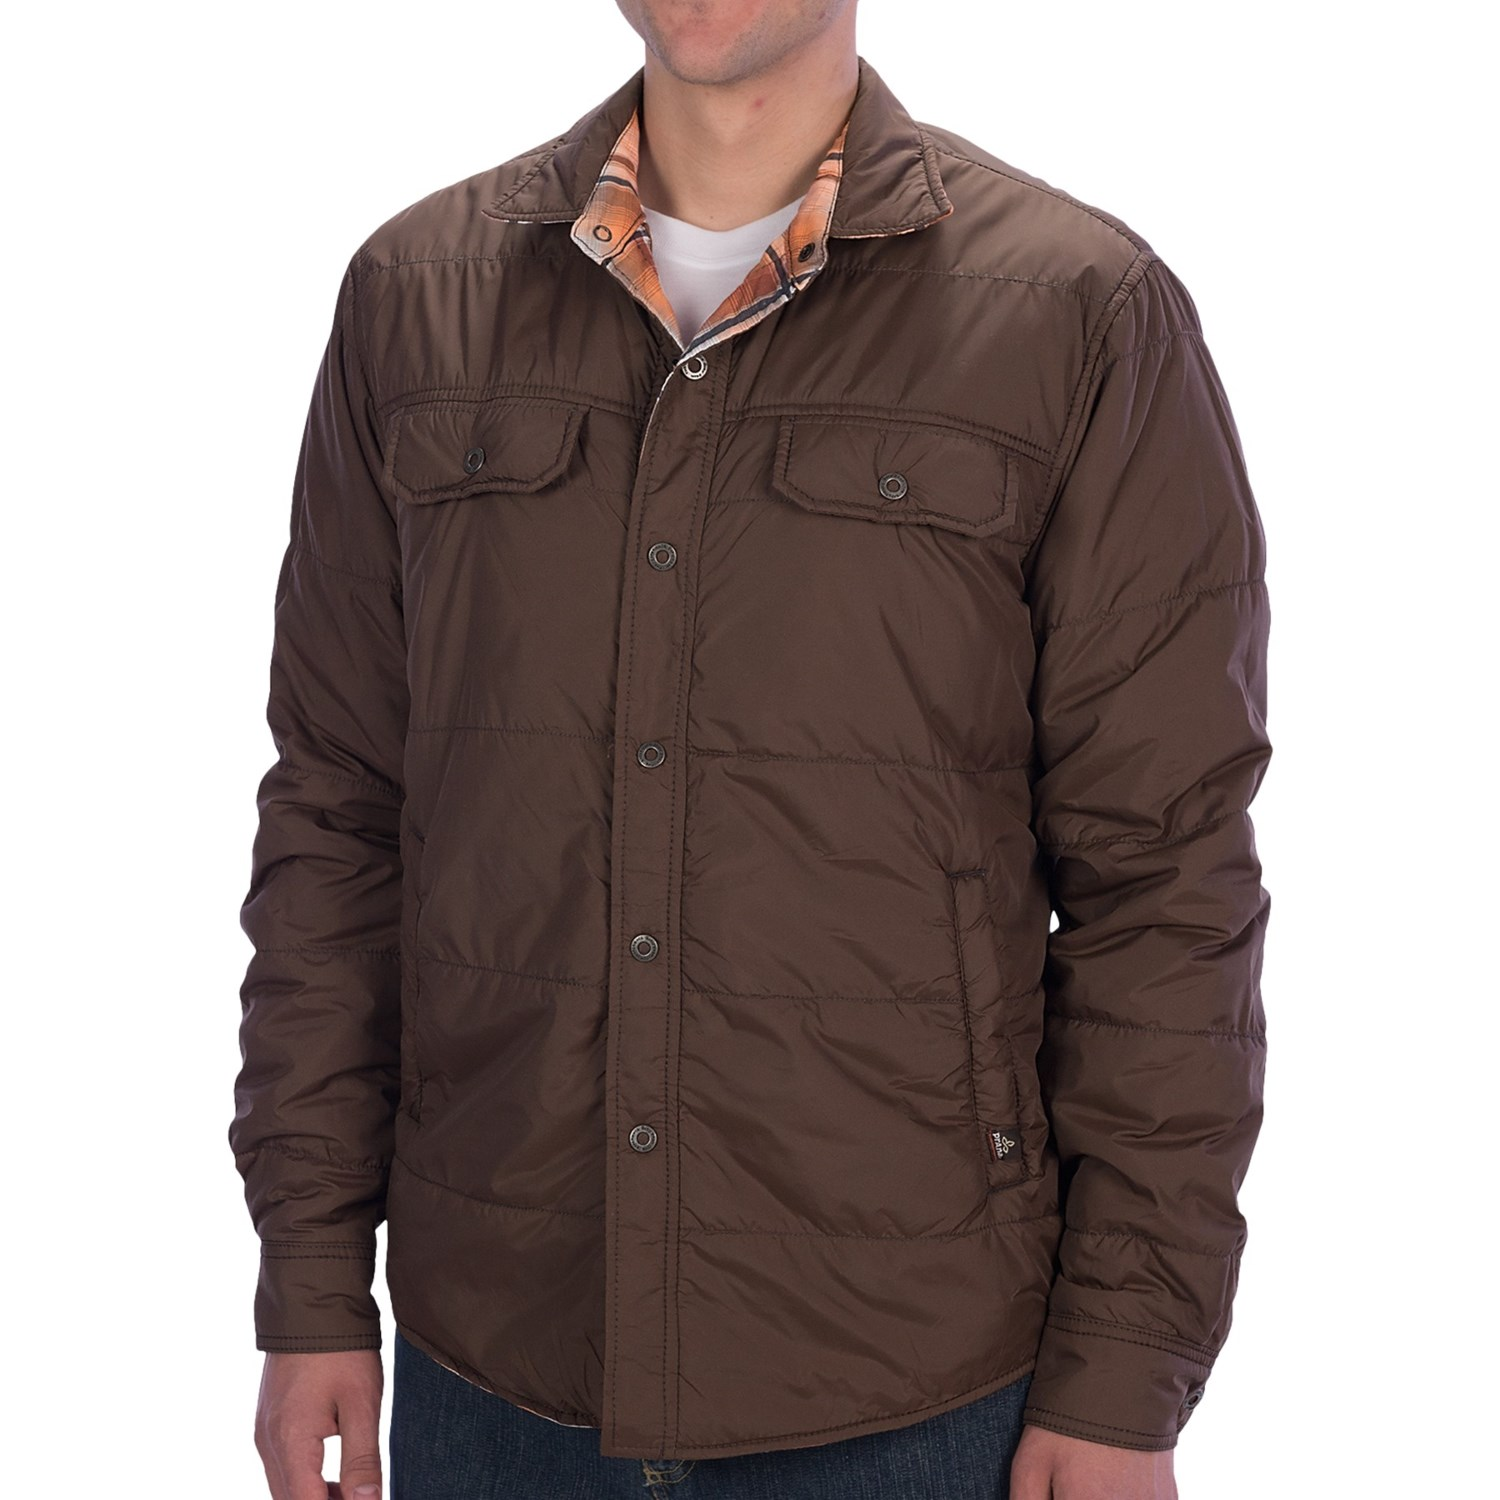 Enjoy free shipping and easy returns every day at Kohl's. Find great deals on Mens Reversible Coats & Jackets at Kohl's today!